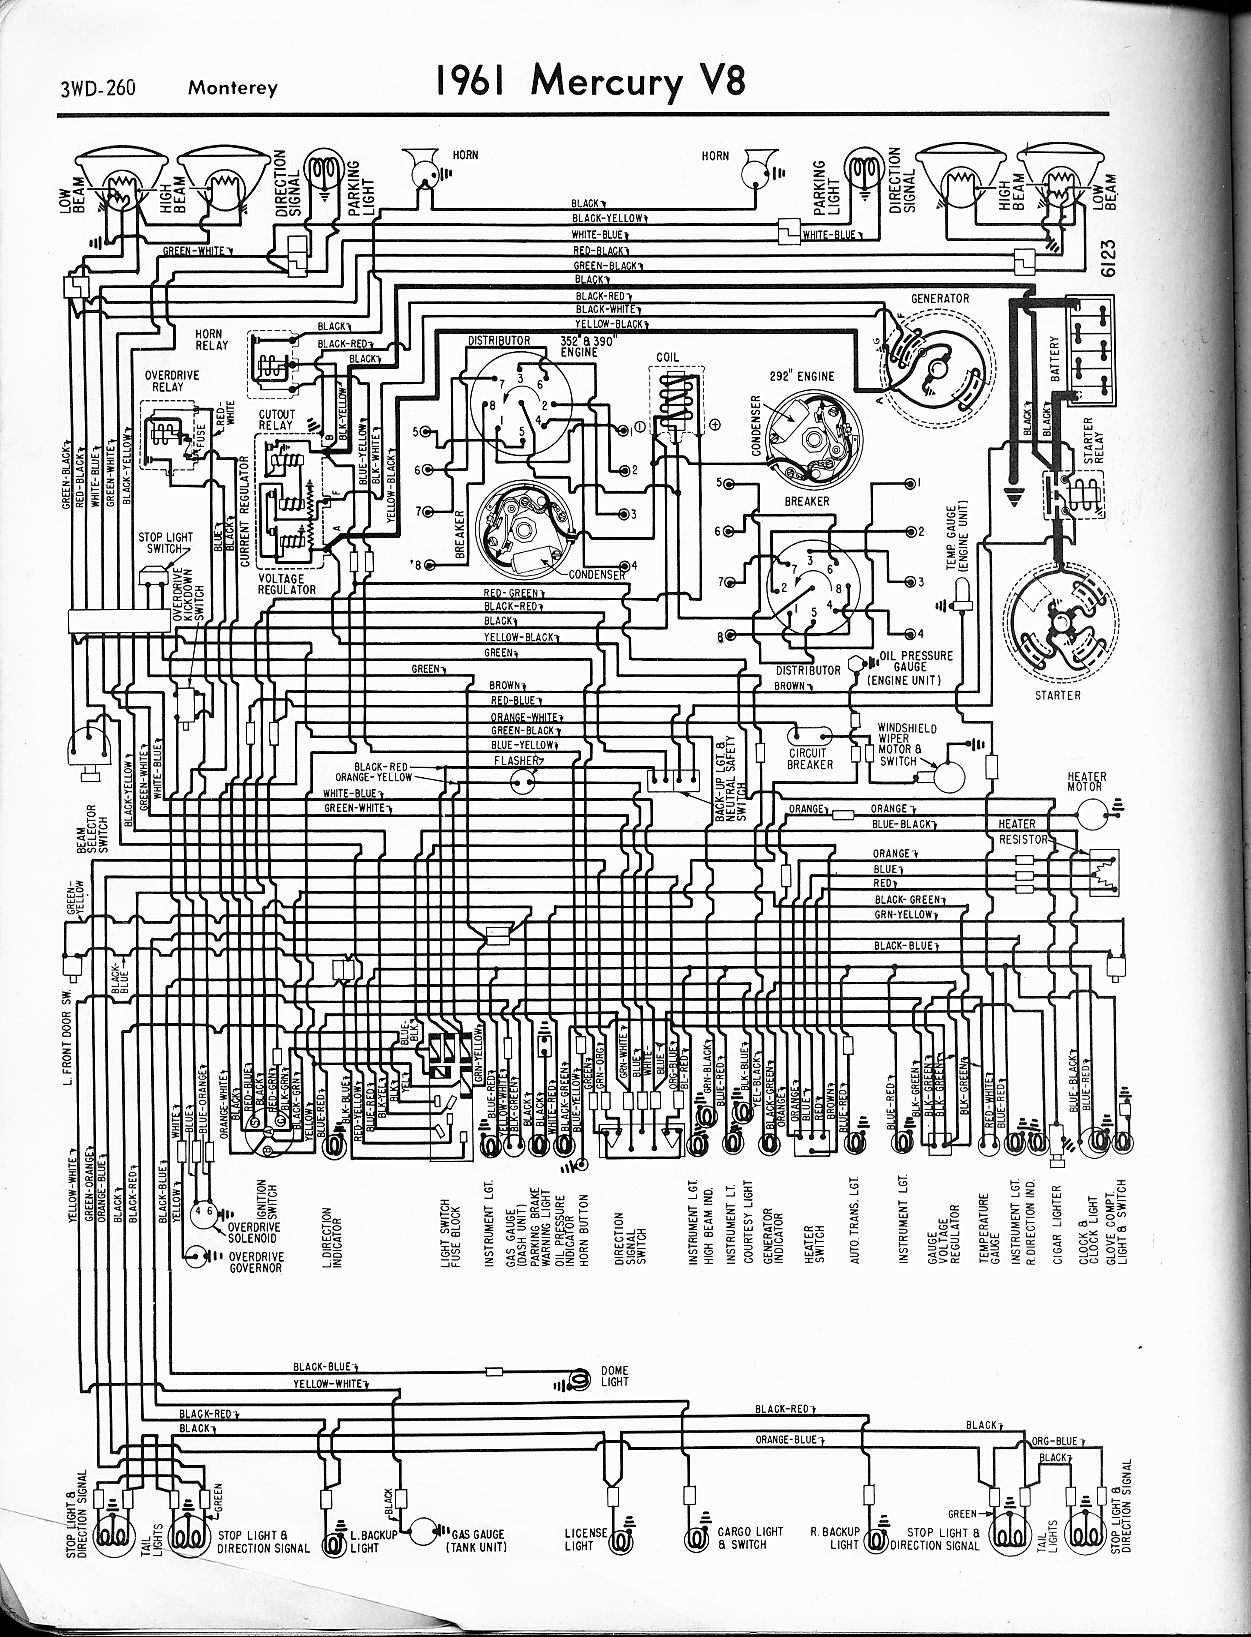 Mercury 4 6 Engine Diagram Wiring Data Schematic 1989 Grand Marquis Diagrams The Old Car Manual Project Rh Oldcarmanualproject Com Ford 46 97